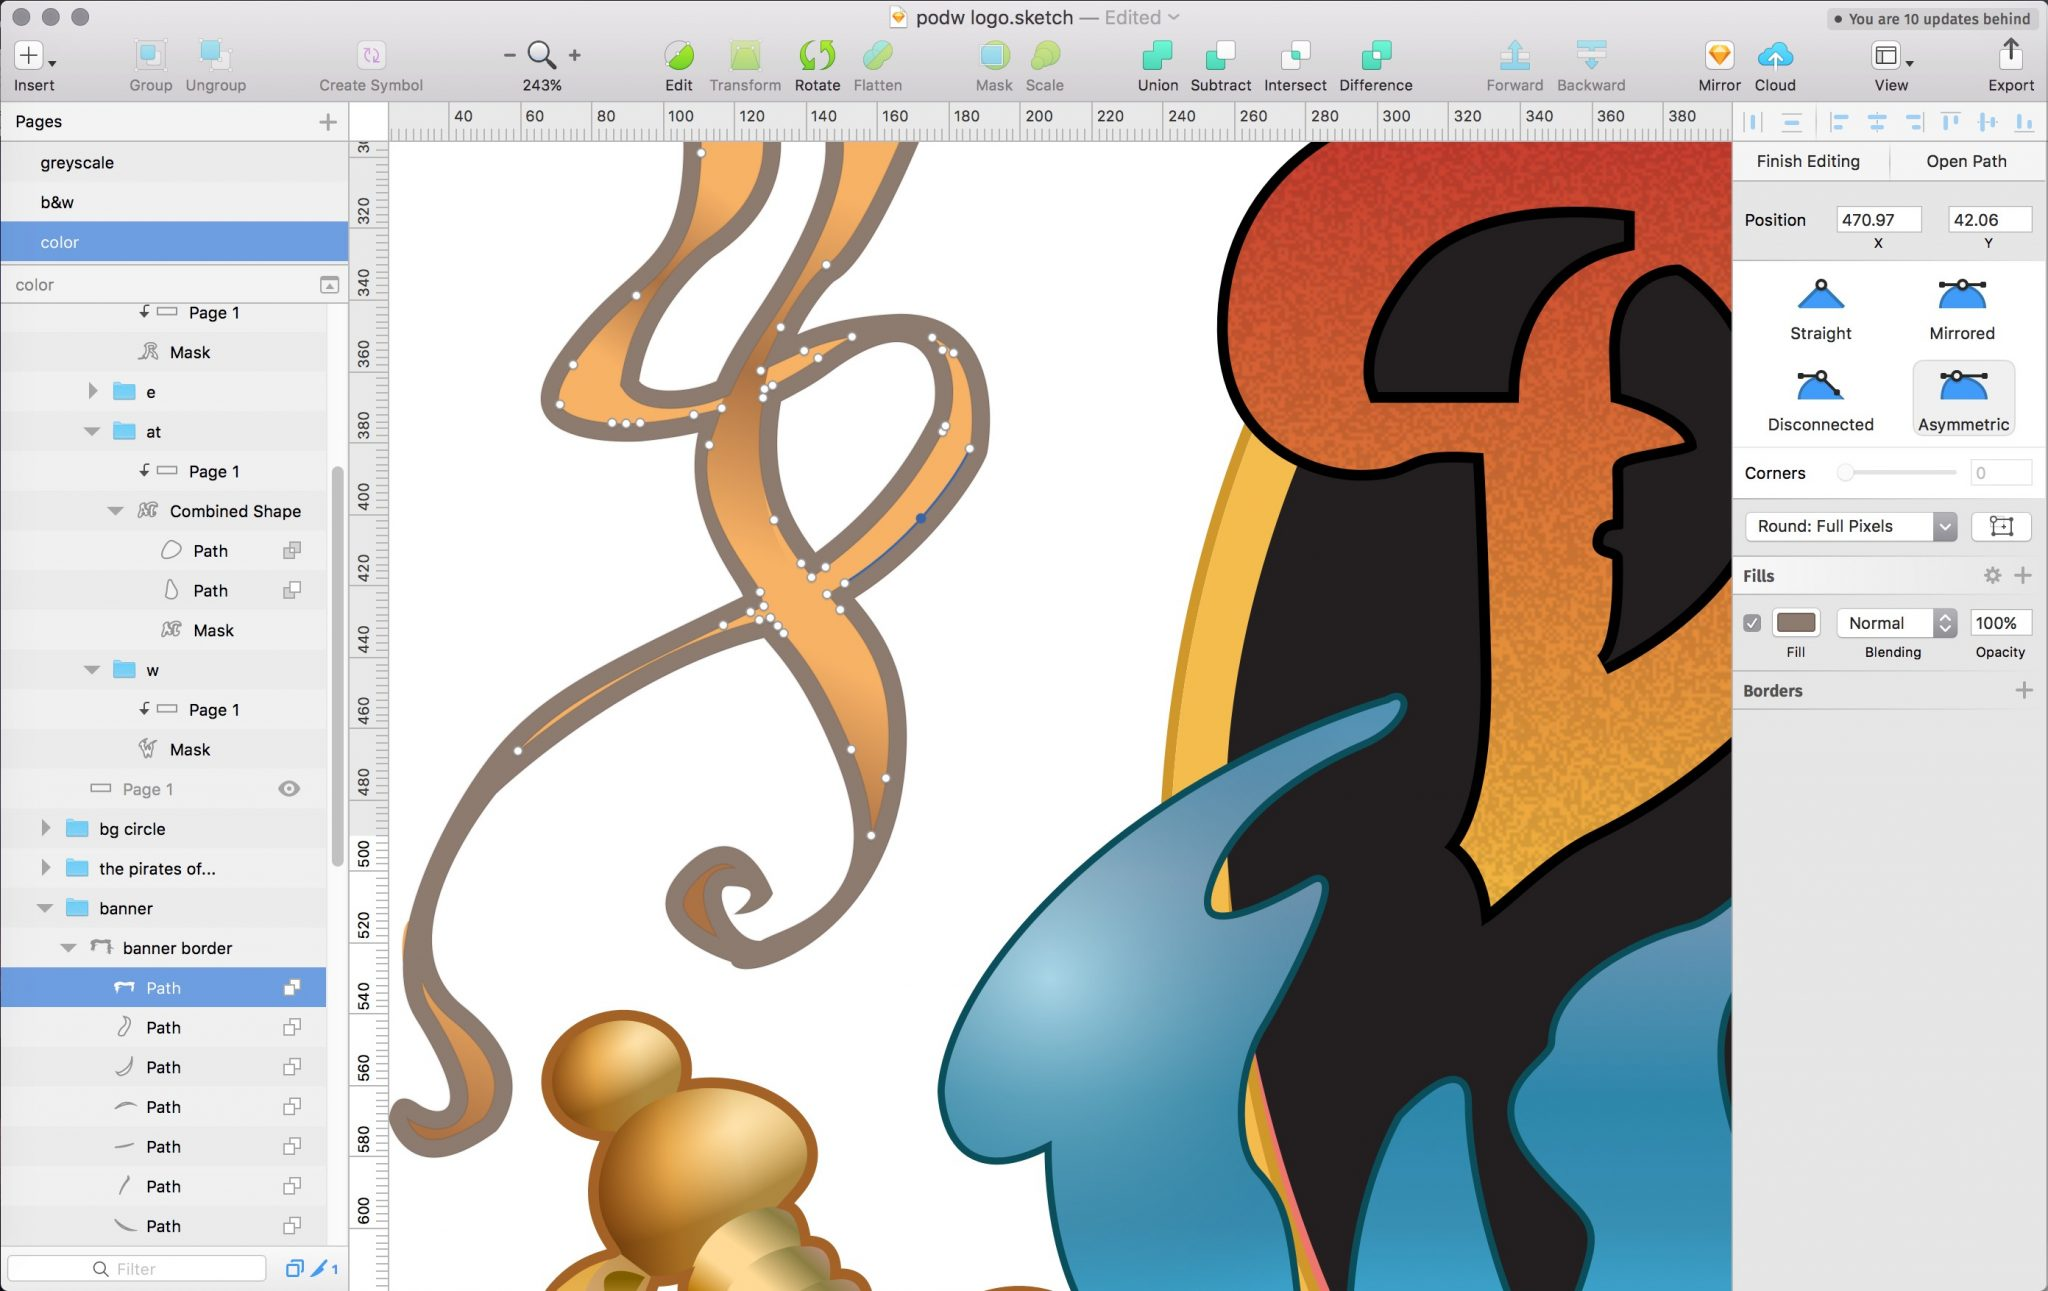 Screenshot of the logo illustration work-in-progress file in Sketch.